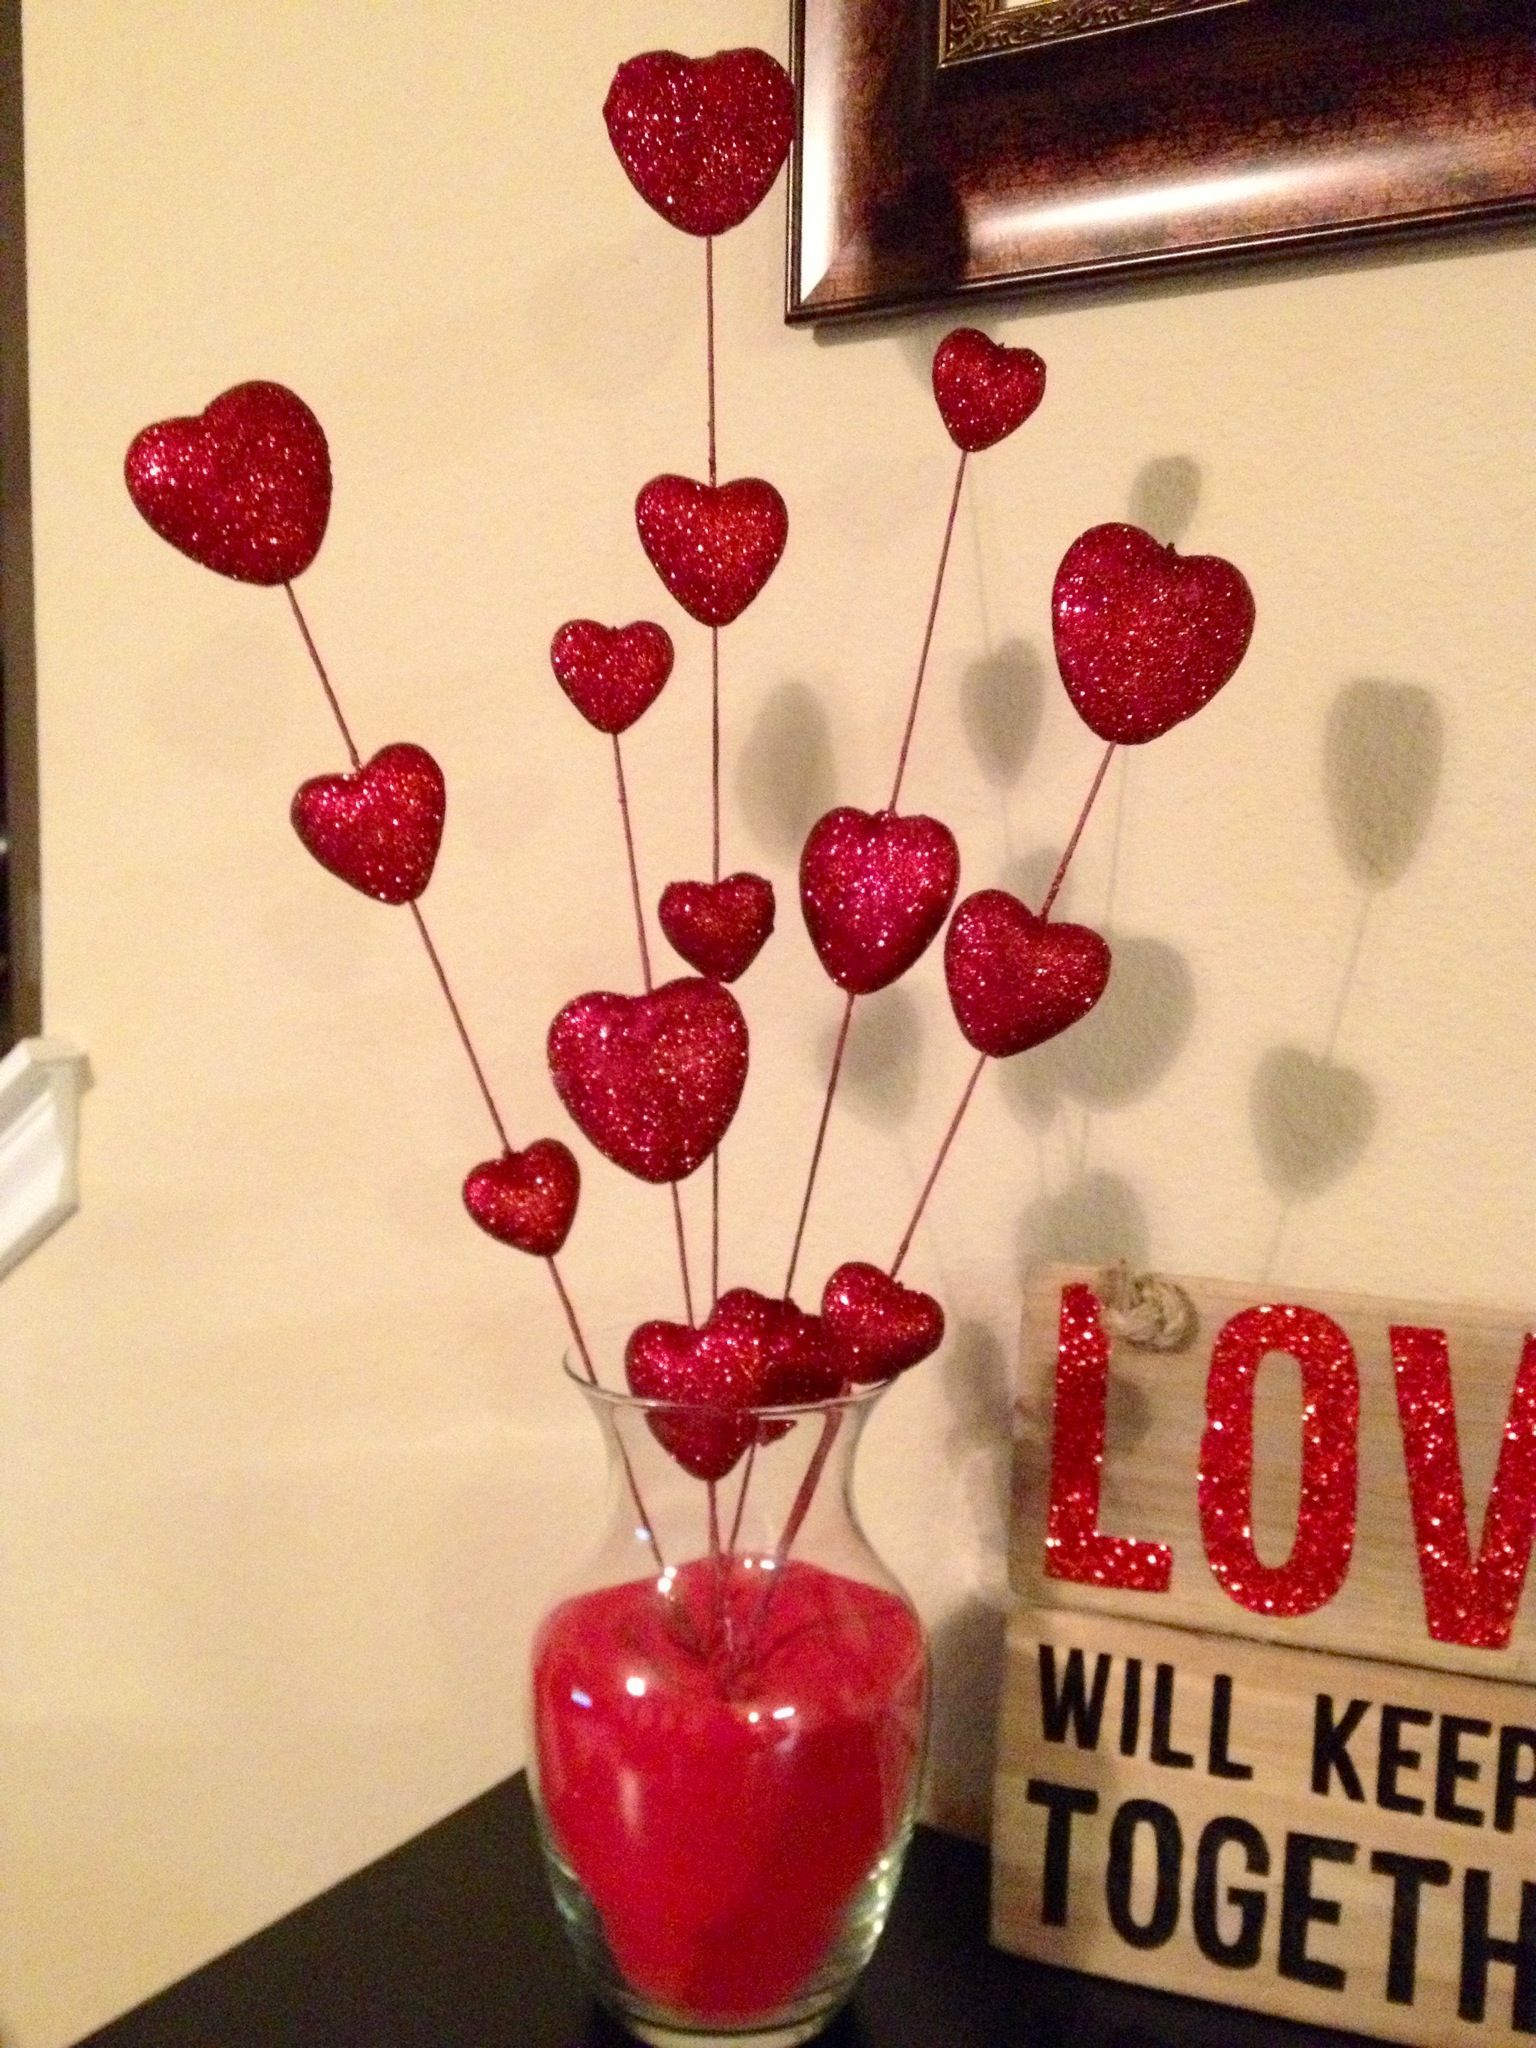 Diy Valentine Decor Glass Vase Filled With Red Sand With Heart Sticks From Hobby Lobby Easy A Diy Valentines Decorations Valentine Decorations Valentines Diy